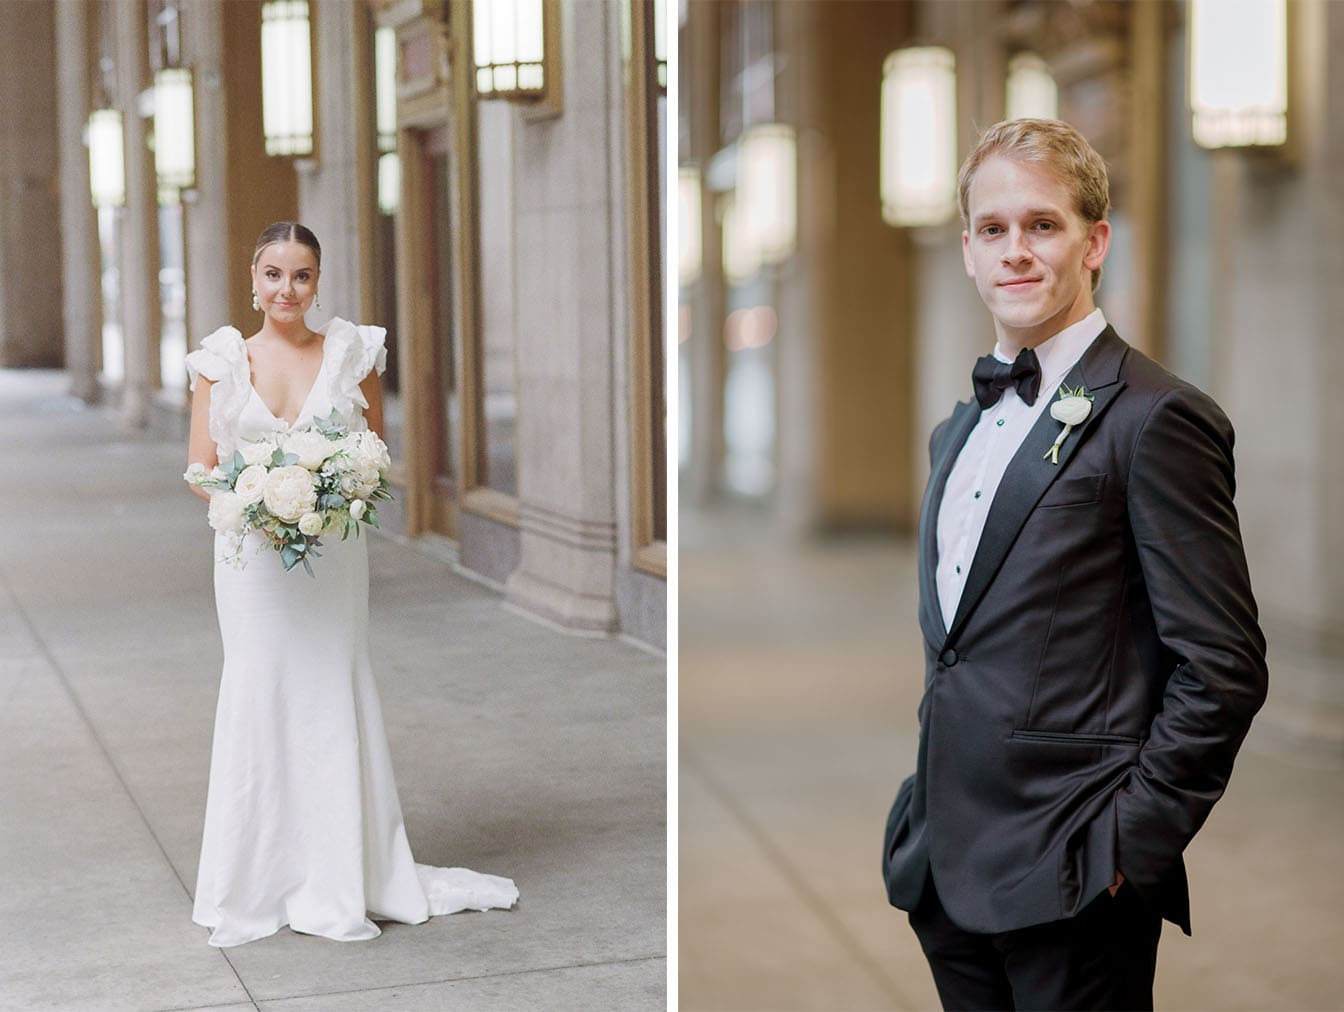 Portraits of bride and groom at Lyric Opera House